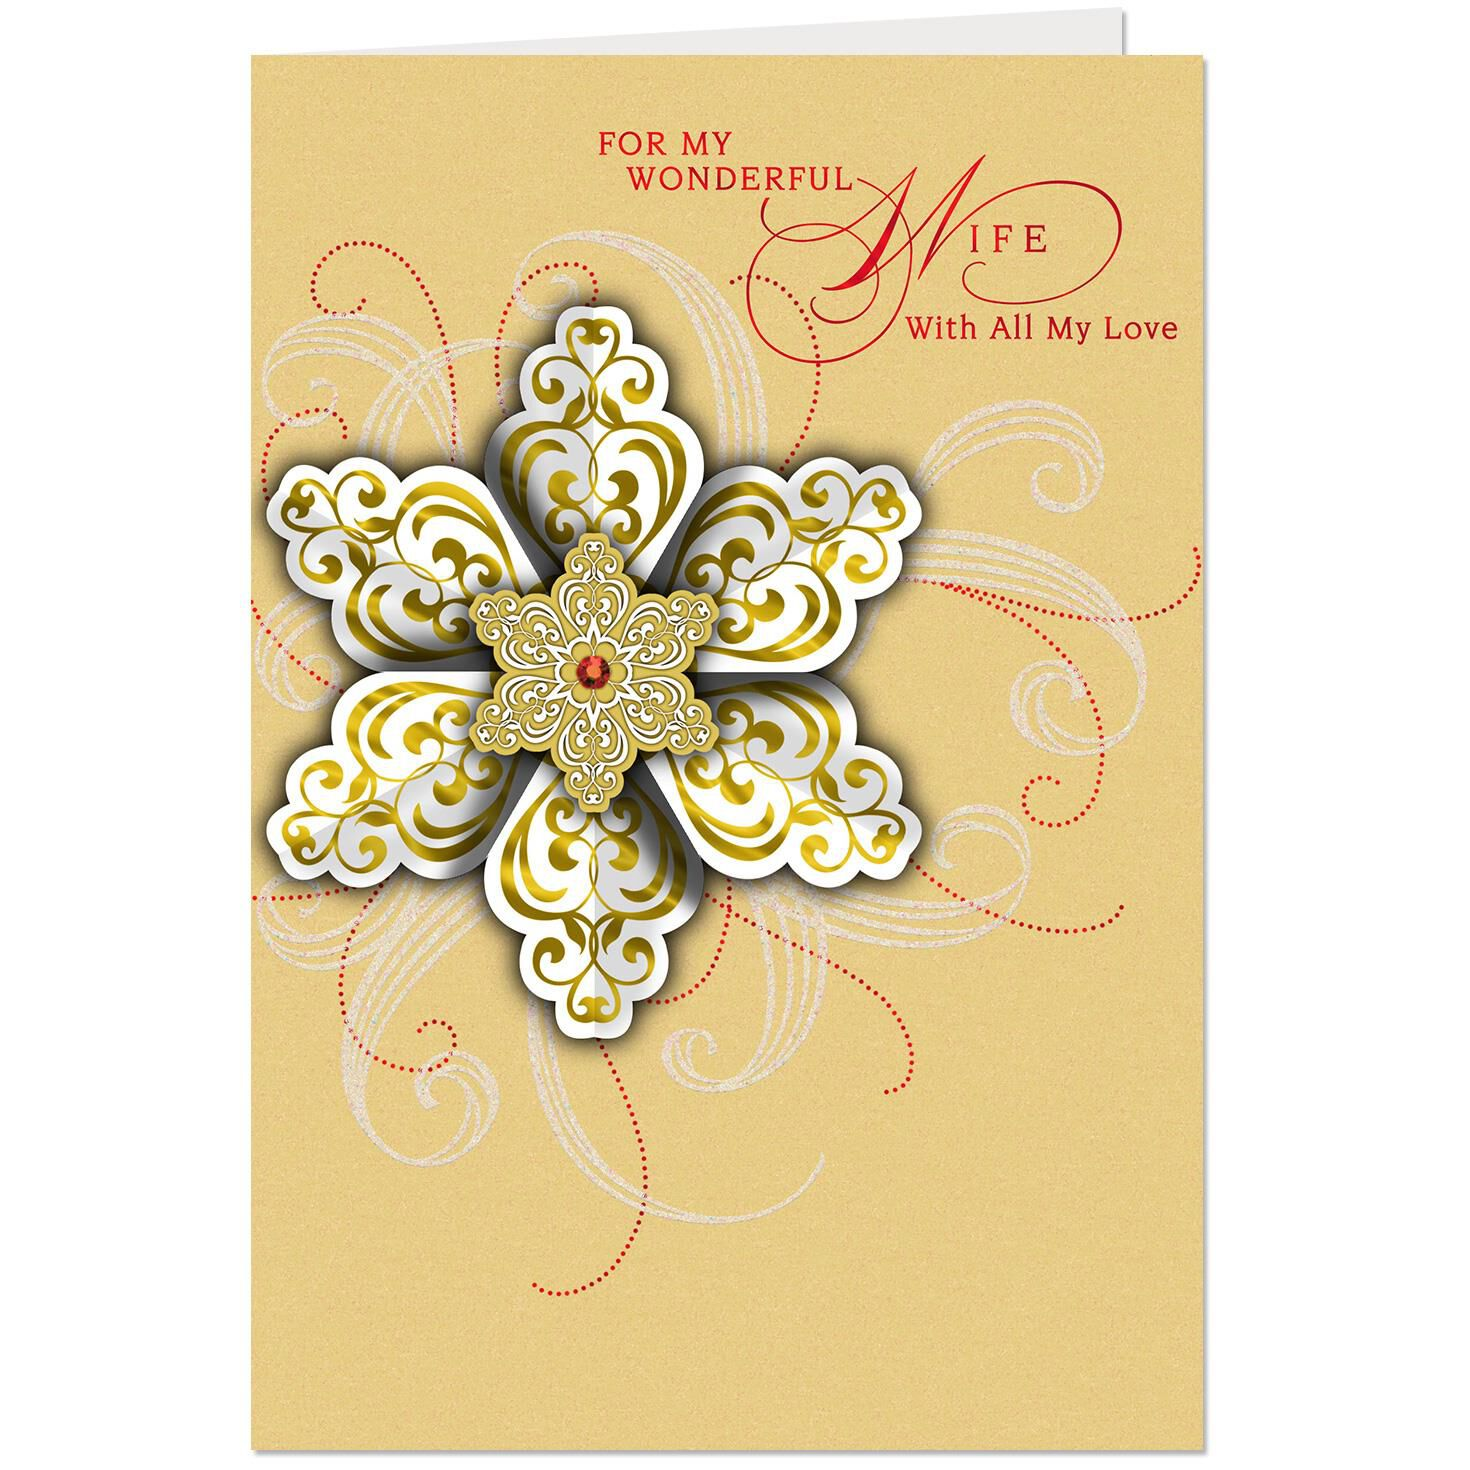 My Promise For You Christmas Card For Wife Greeting Cards Hallmark